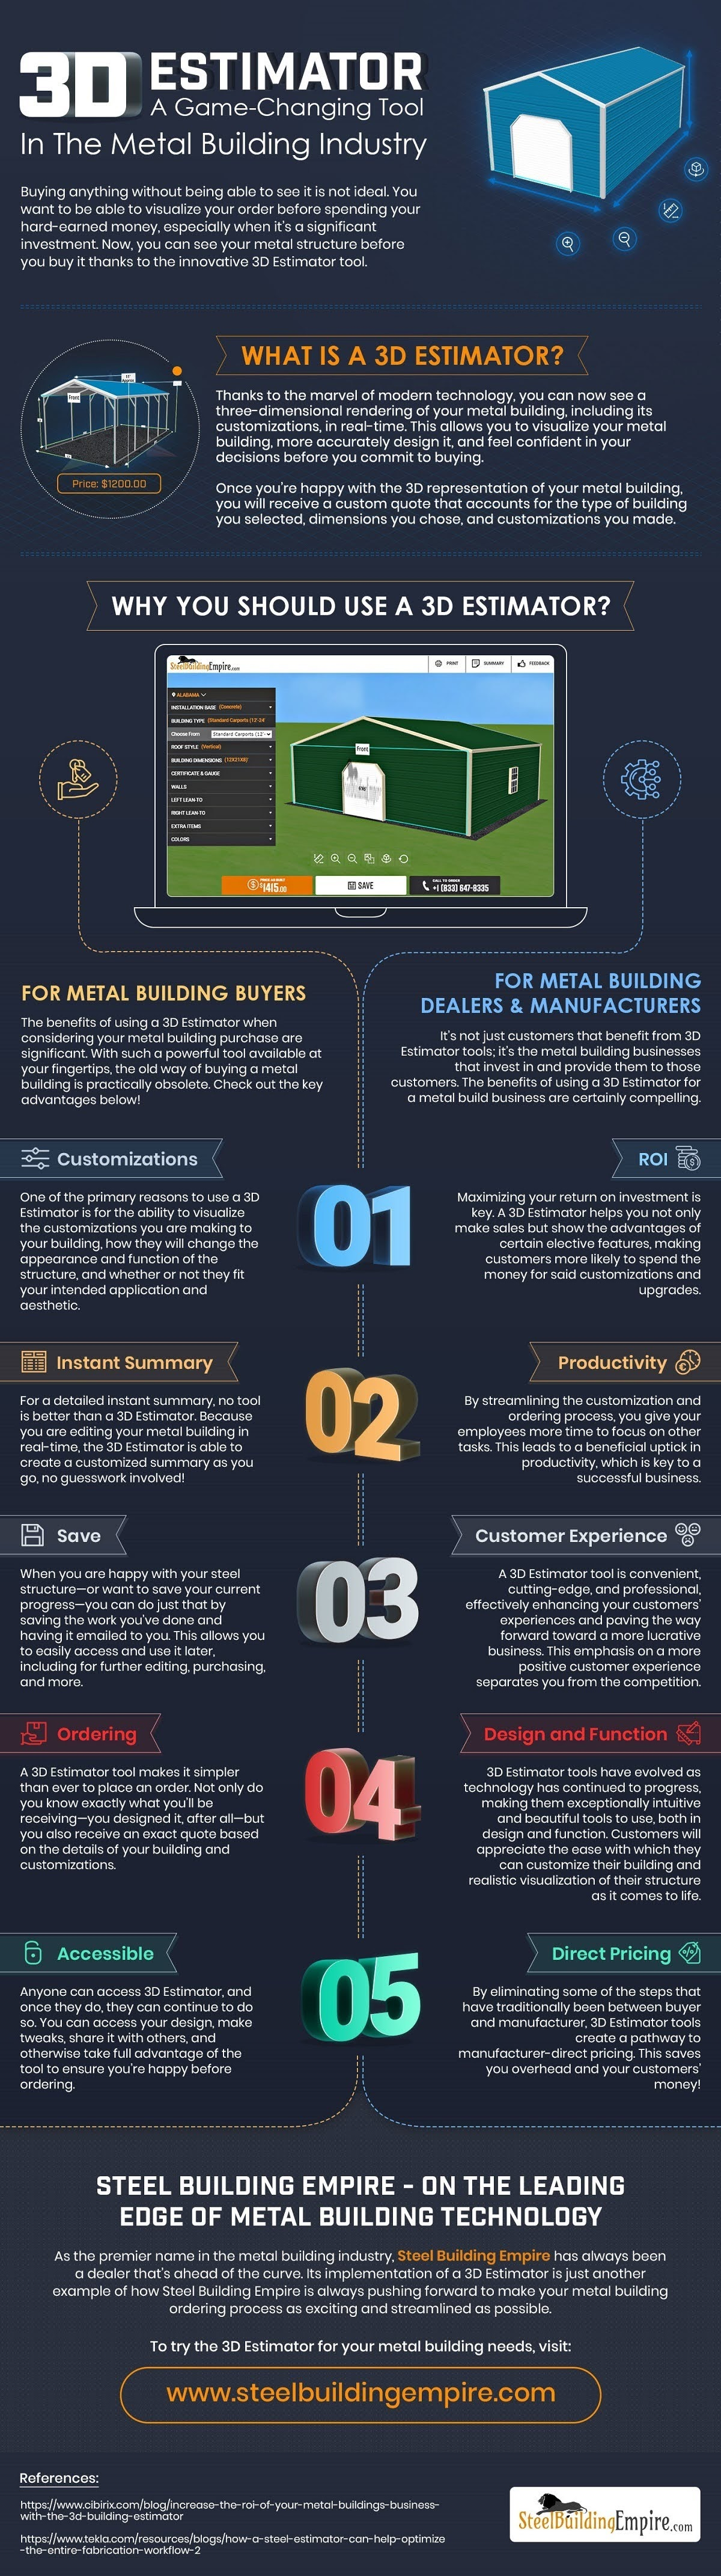 3D Estimator – A Game-Changing Tool in the Metal Building Industry #infographic